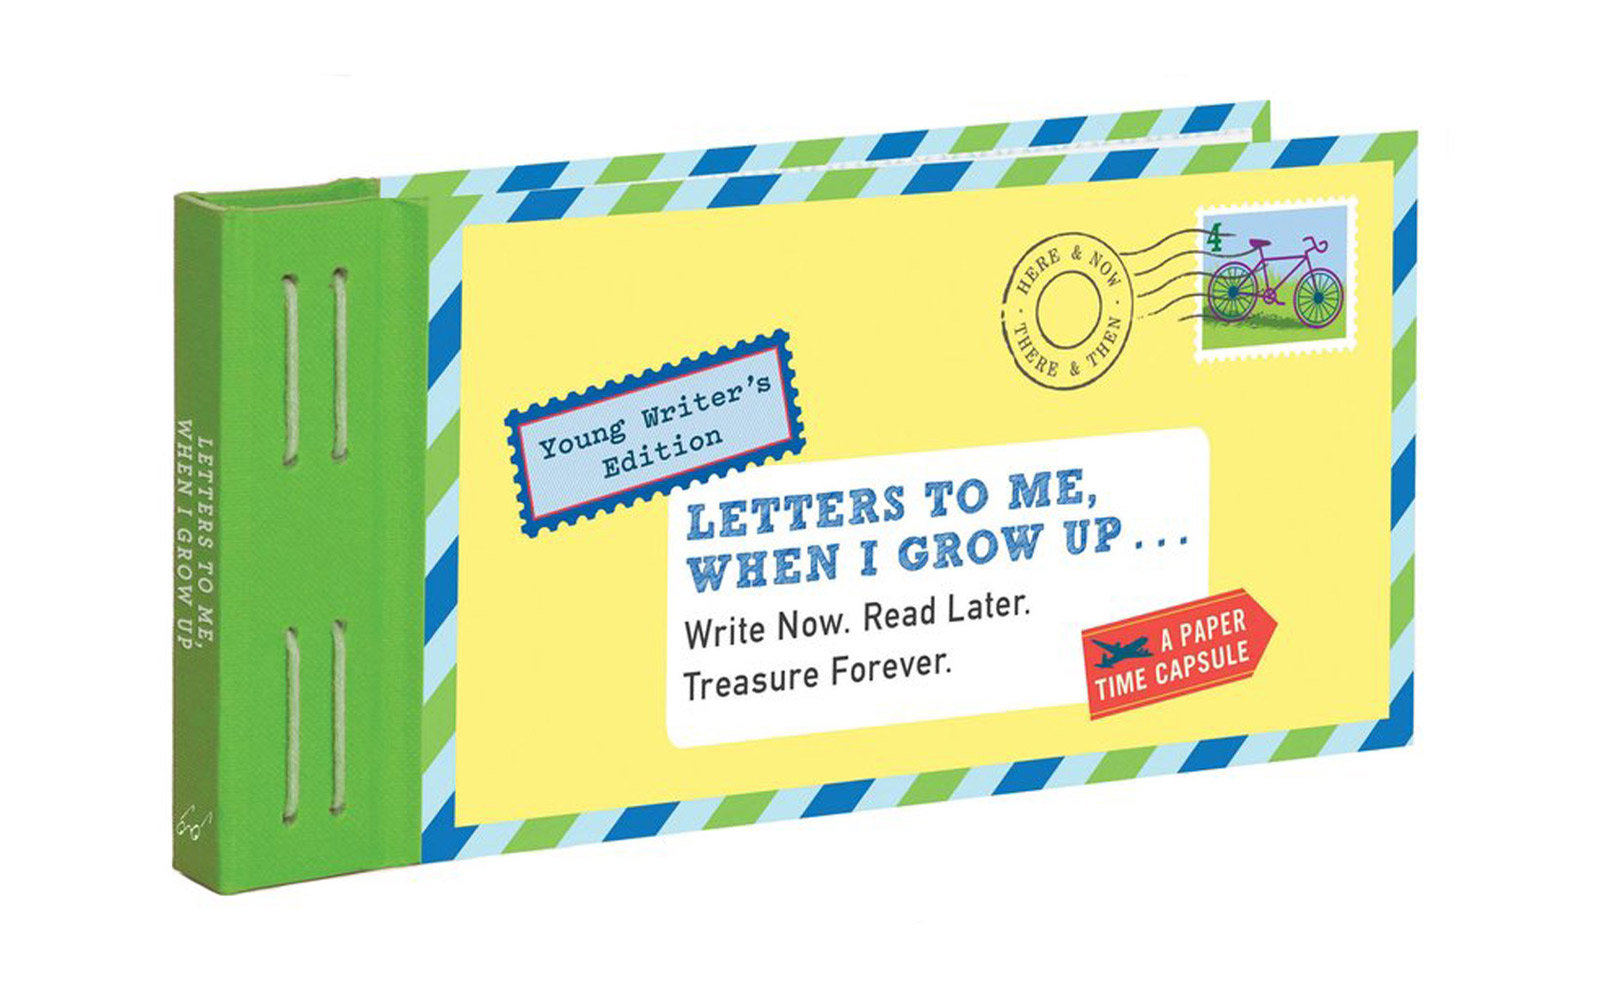 'Letters to Me' book